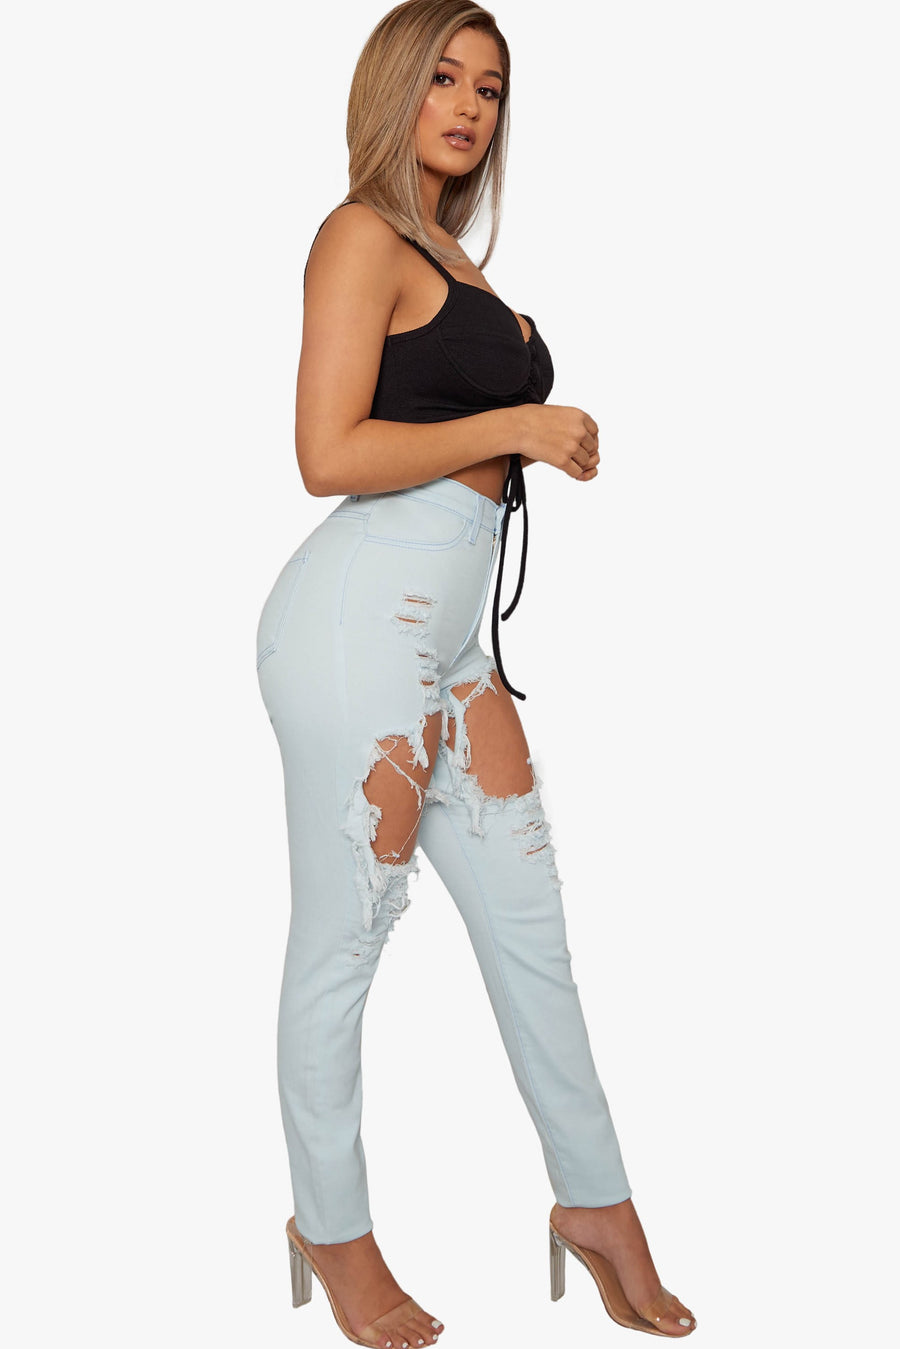 Return Distressed Jeans